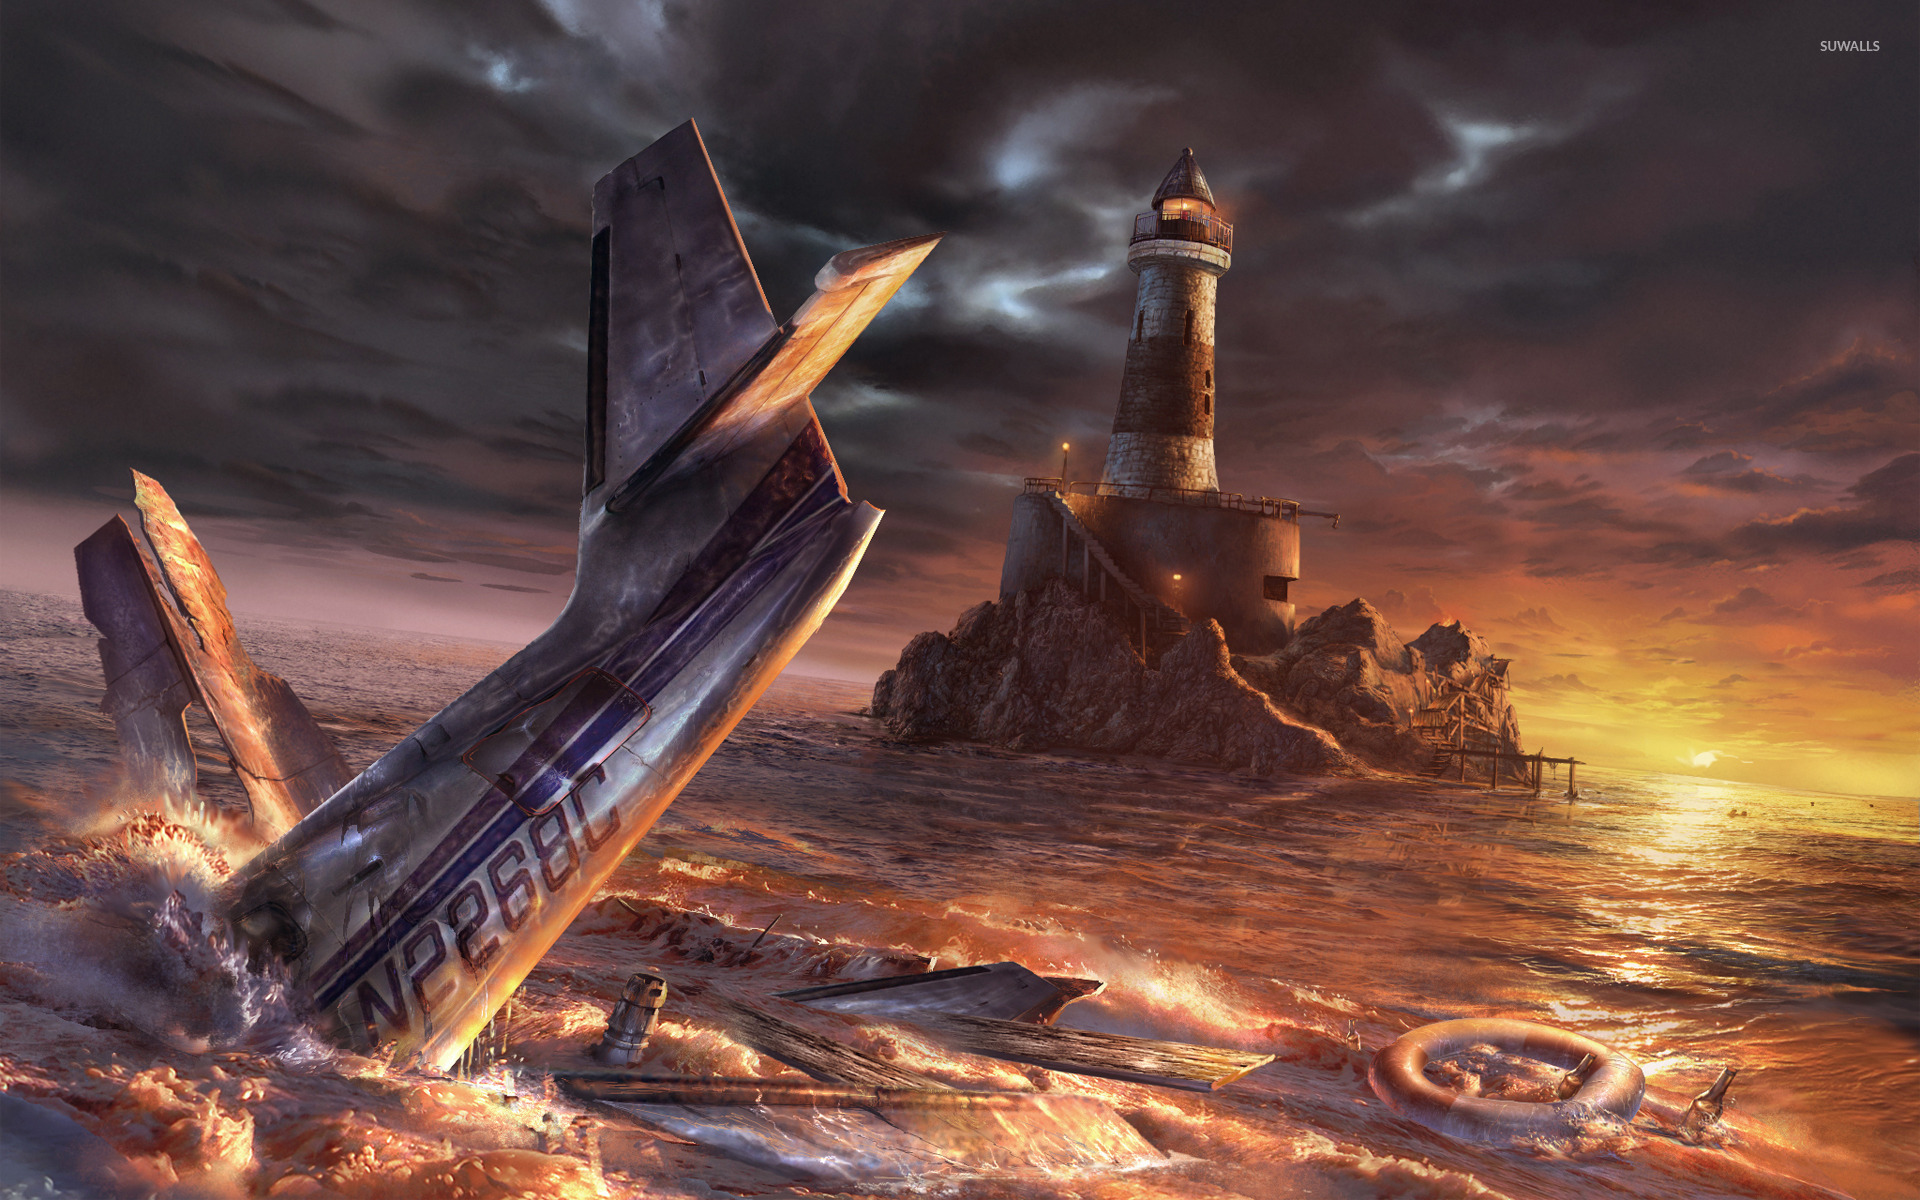 Crashed airplane near the lighthouse wallpaper   Fantasy wallpapers 1920x1200